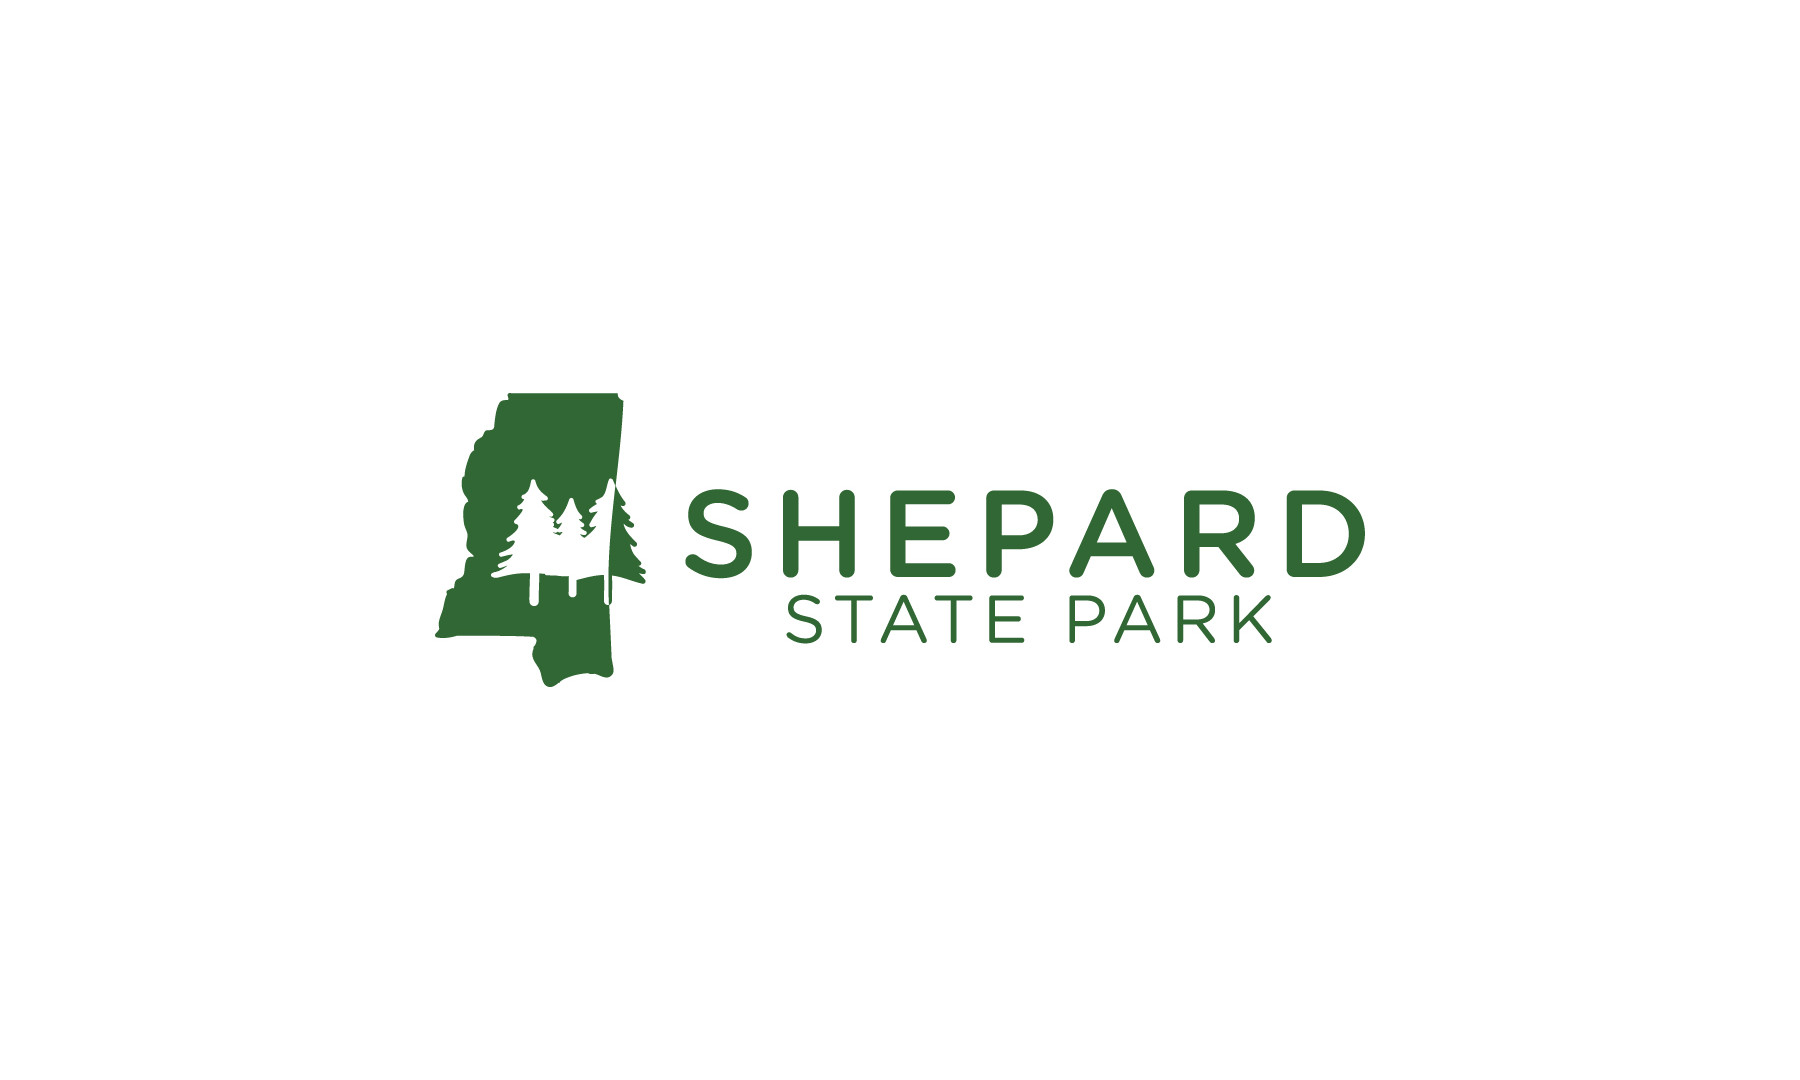 Shepard State Park Secondary Logo